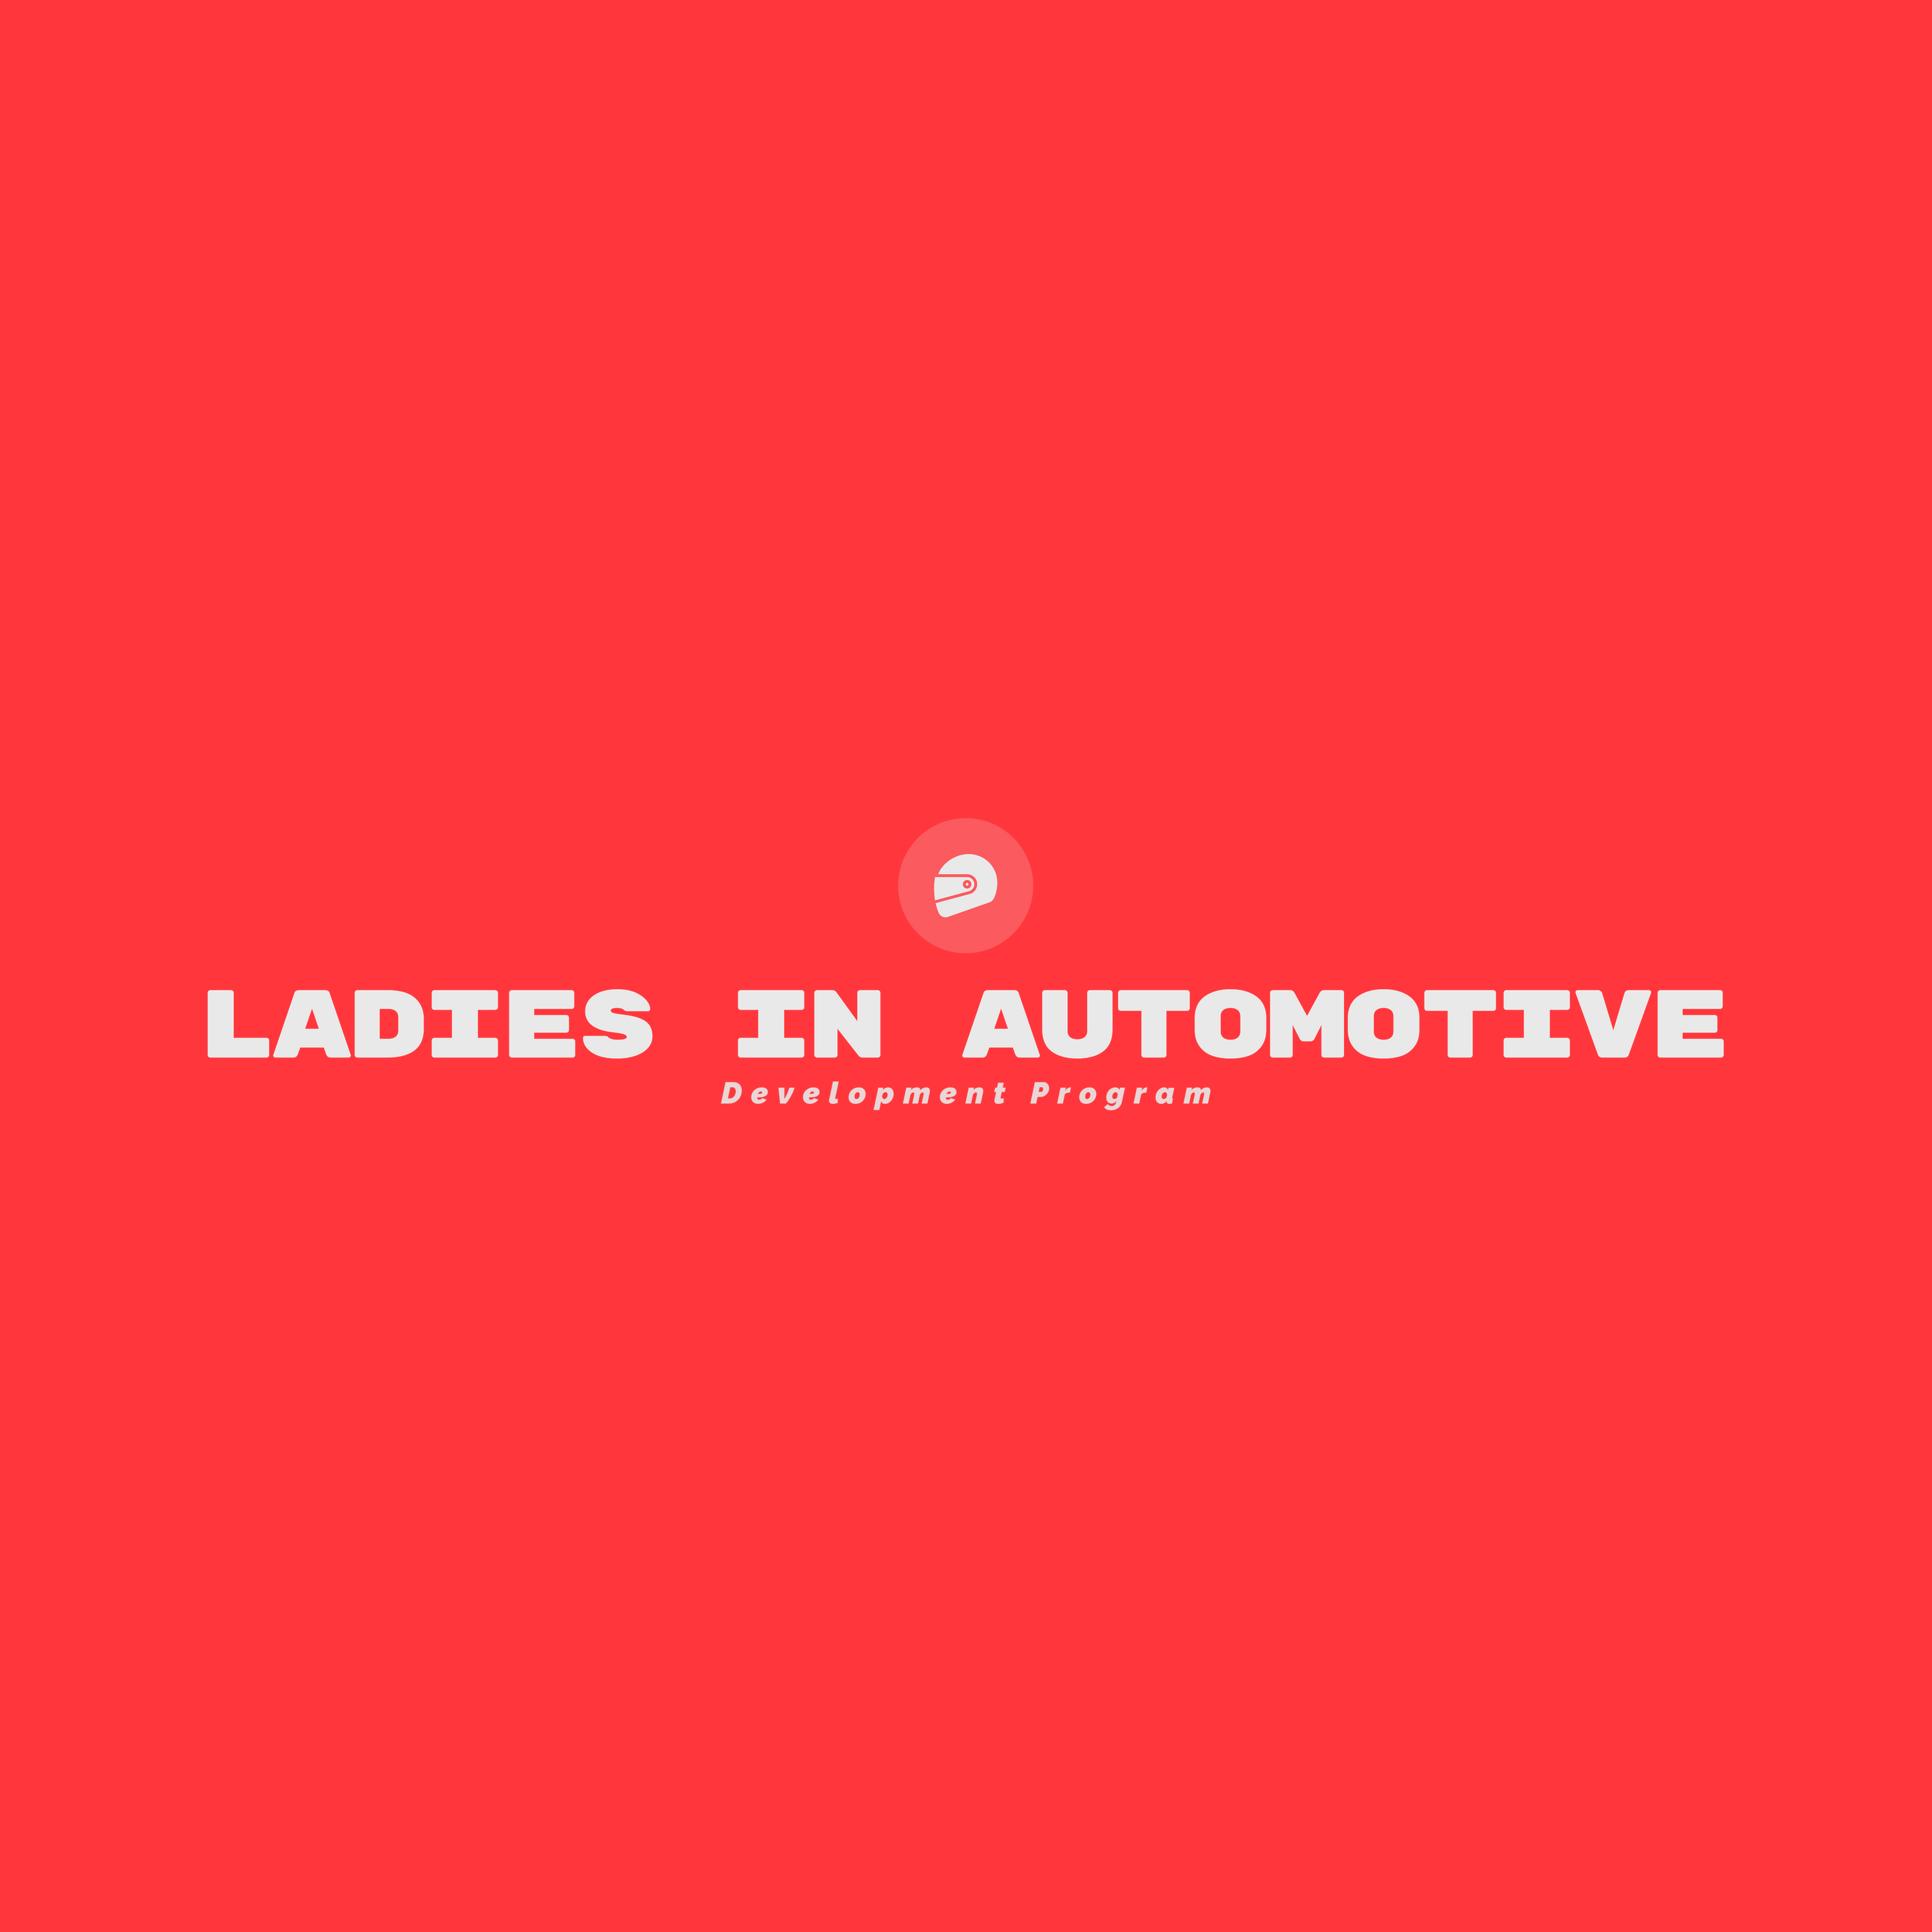 Ladies in Automotive